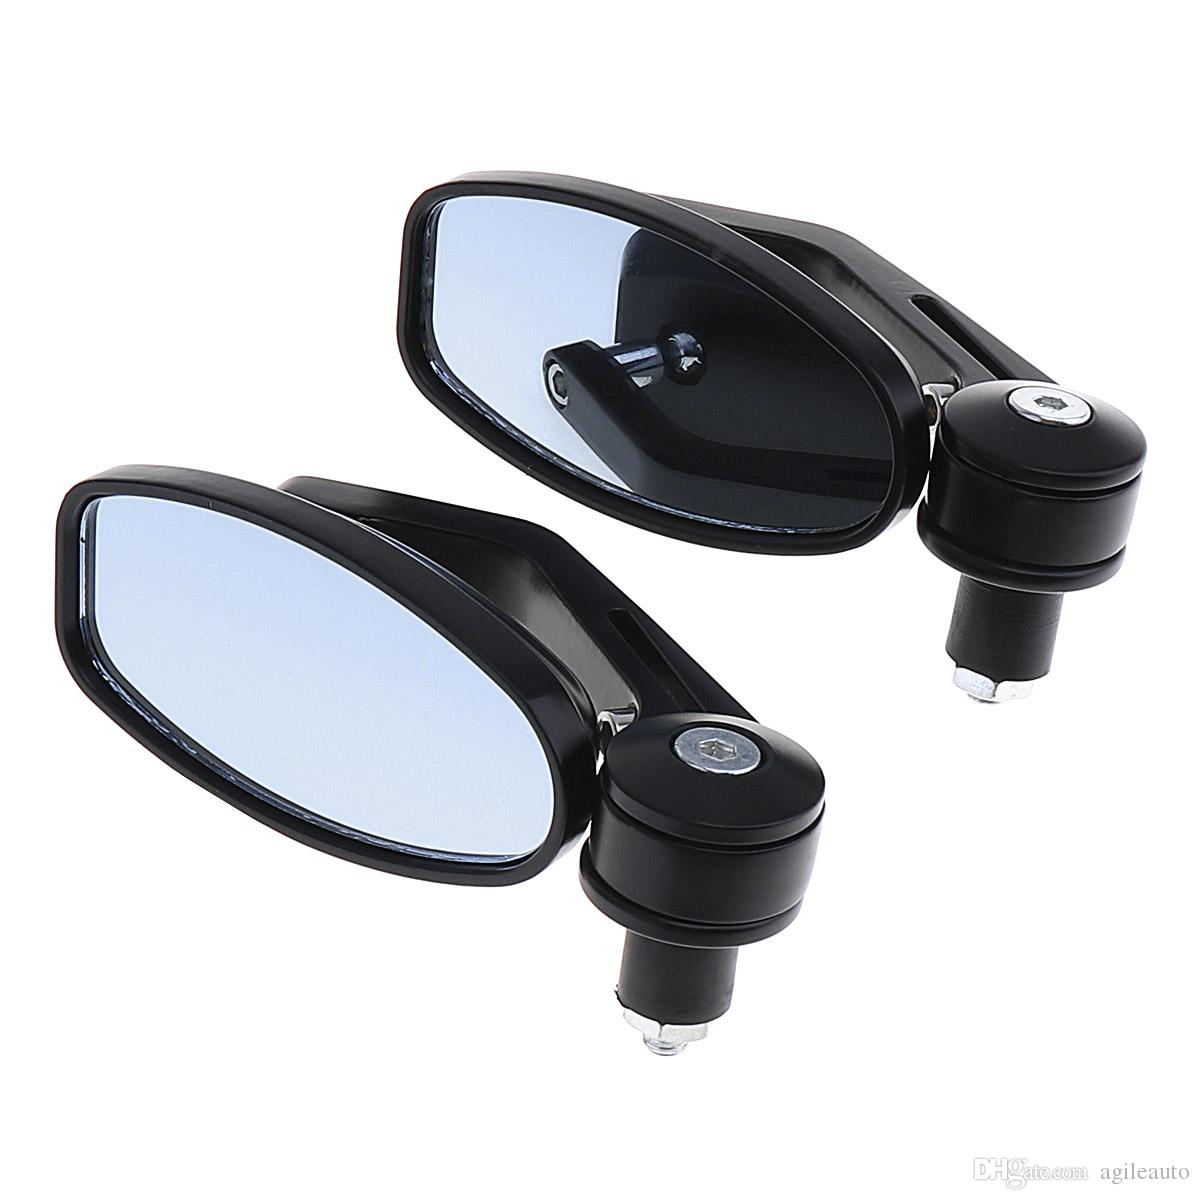 motorcycle mirror rearview universal mirrors side modified aluminum bike 22mm cherries 2pcs mff 20e motorcycles larger